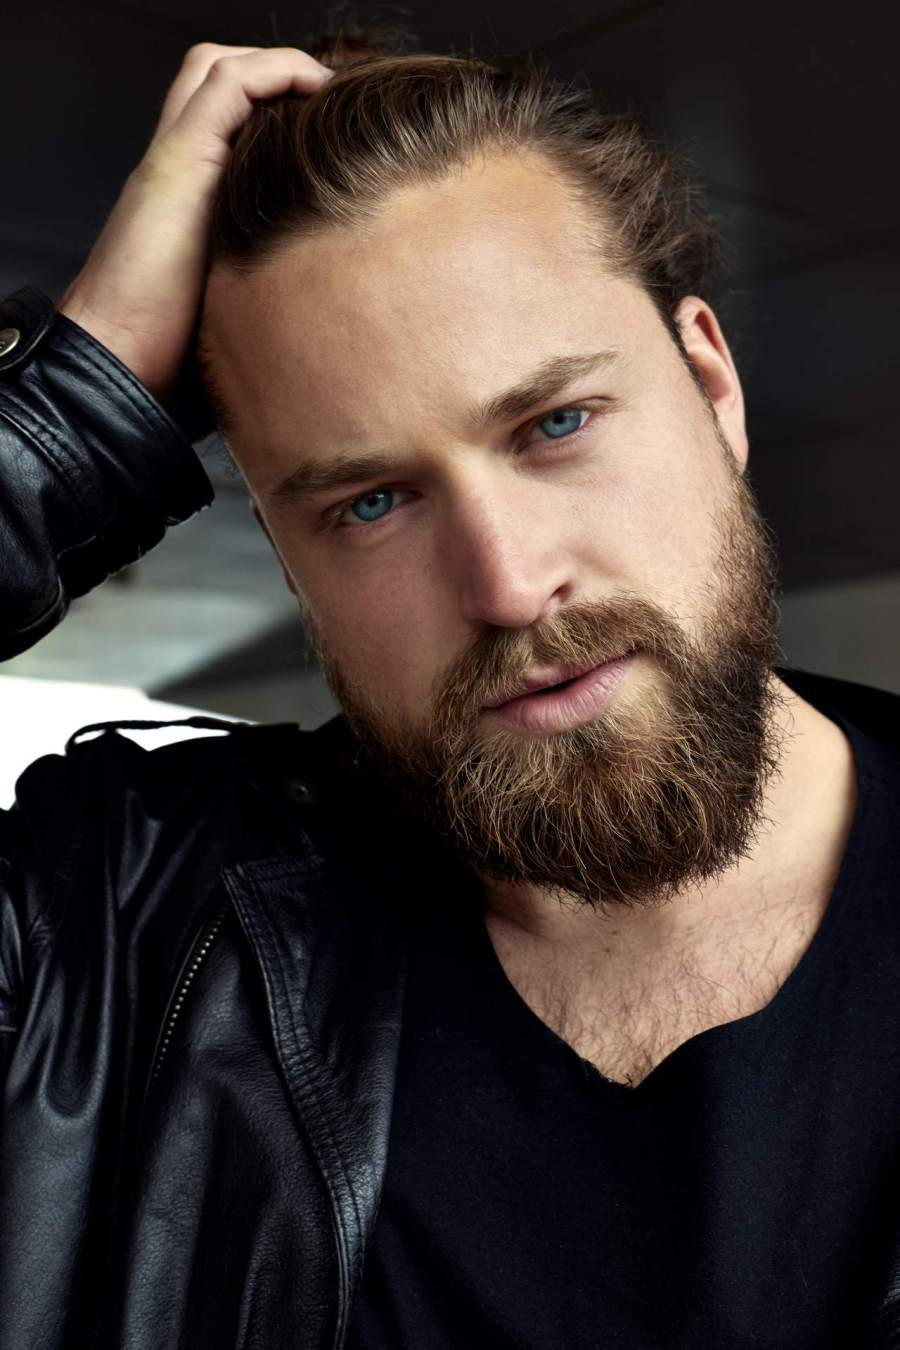 15 Plus-Size Male Models Who Are Too Hot to Handle